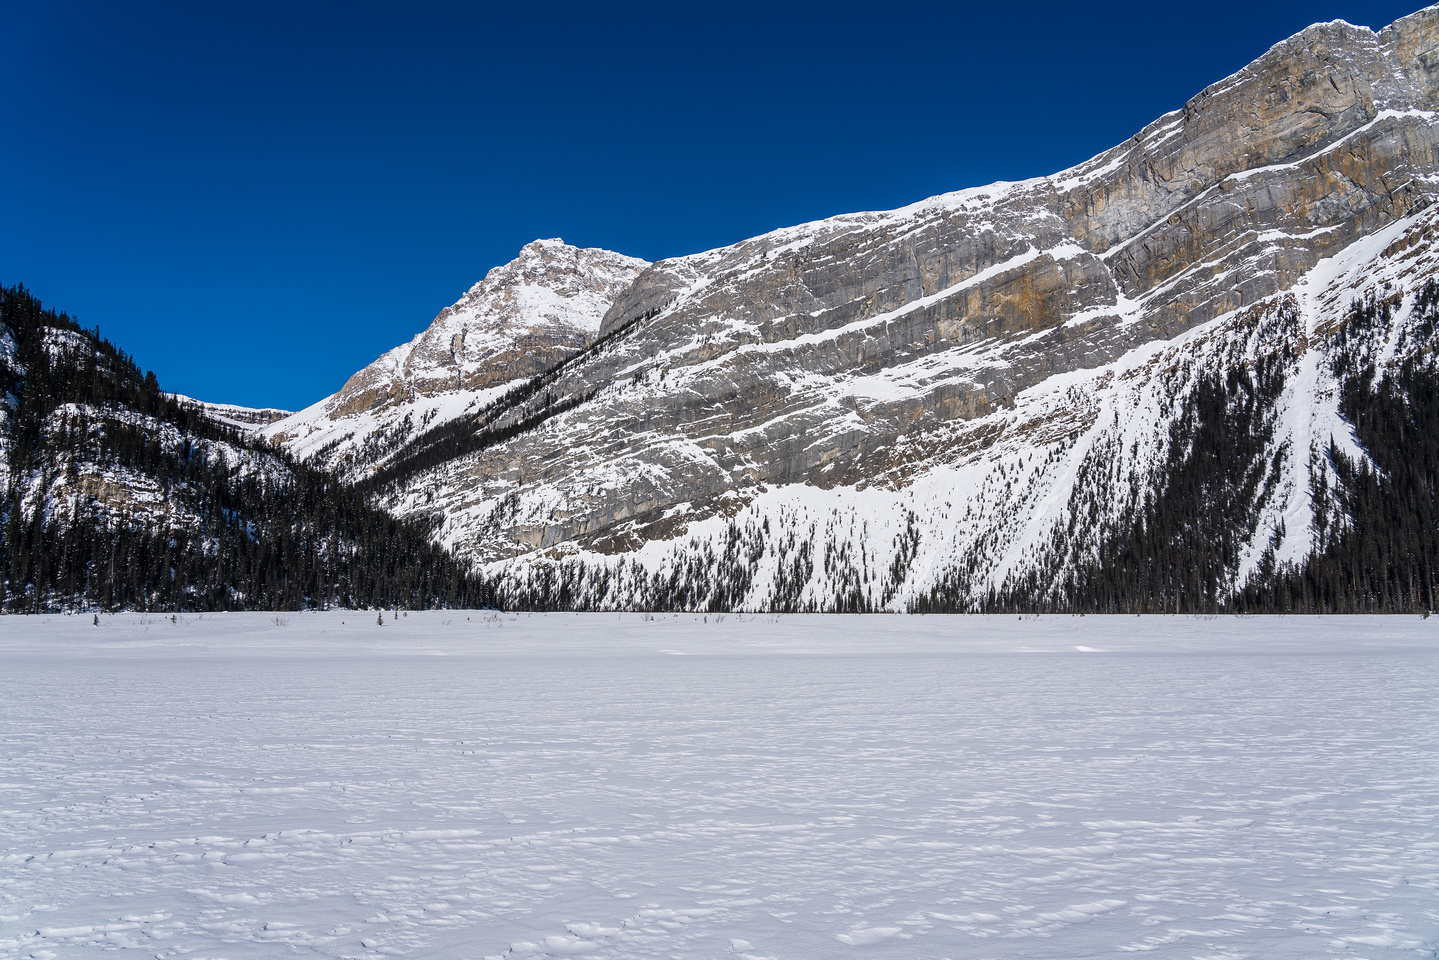 Finally approaching the Balfour Creek flats at the west end of Hector Lake.